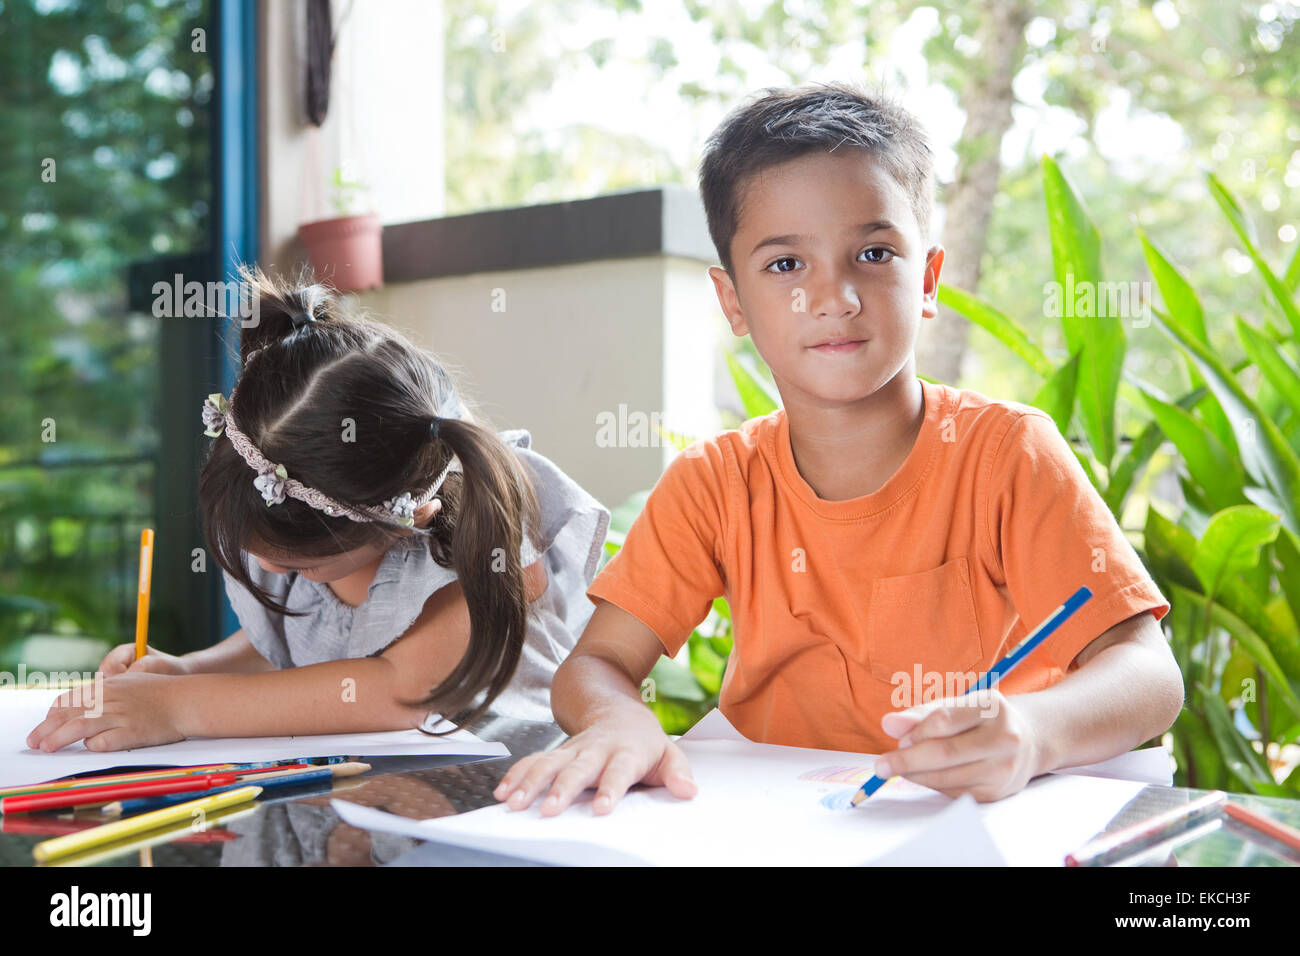 Pan asian boy sitting next to his younger sister enjoying a coloring book activity - Stock Image